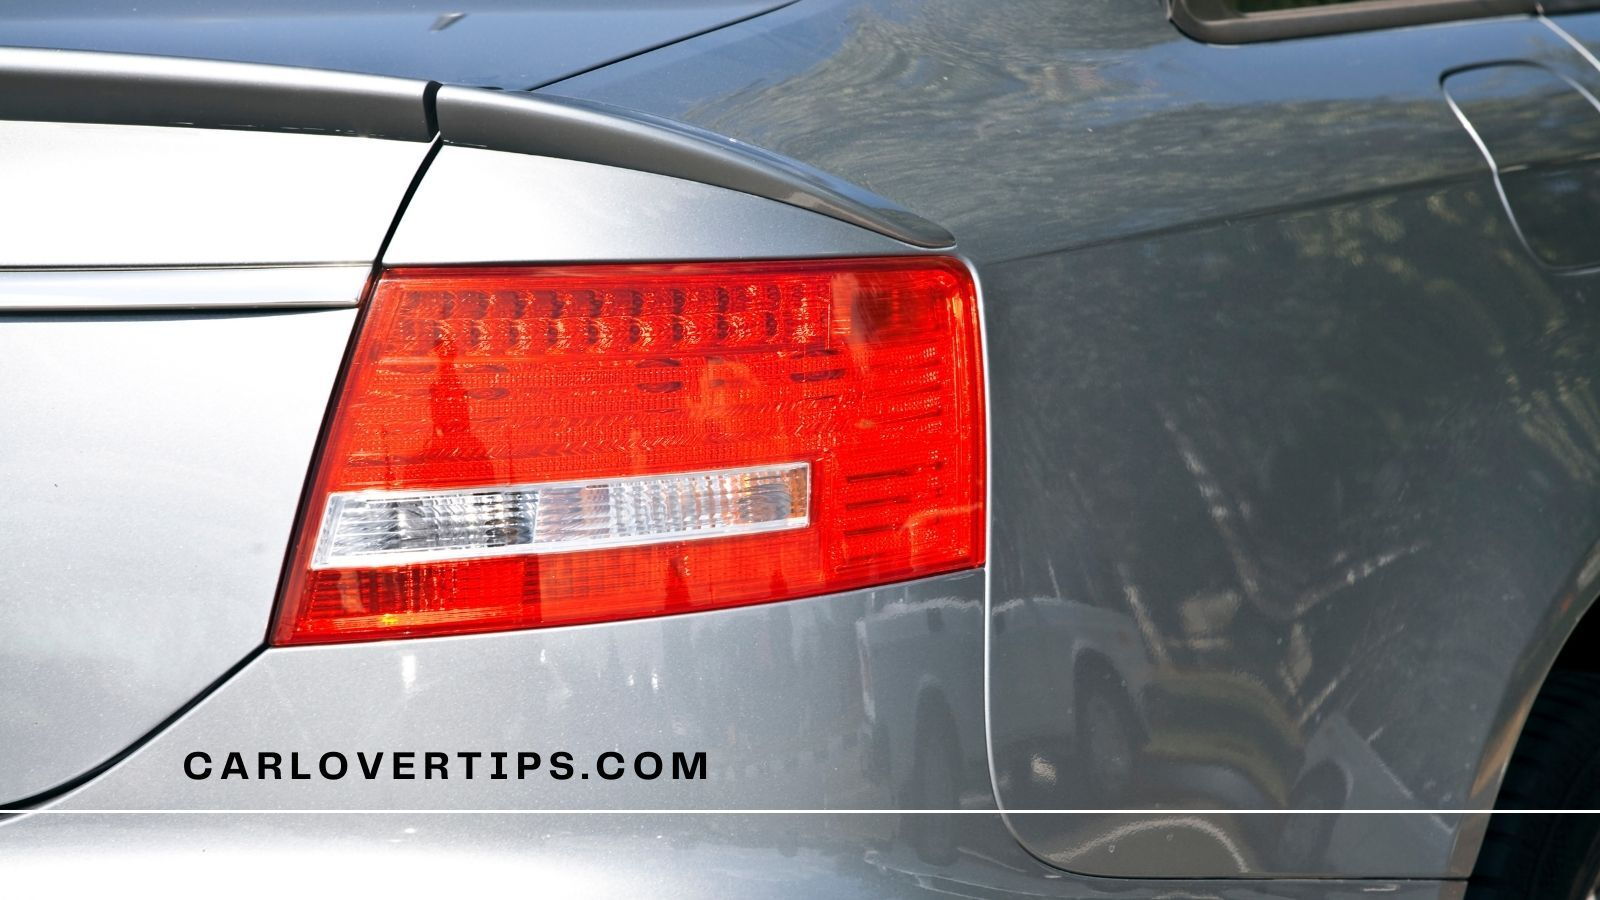 Check All Your Car Lights Once a Month